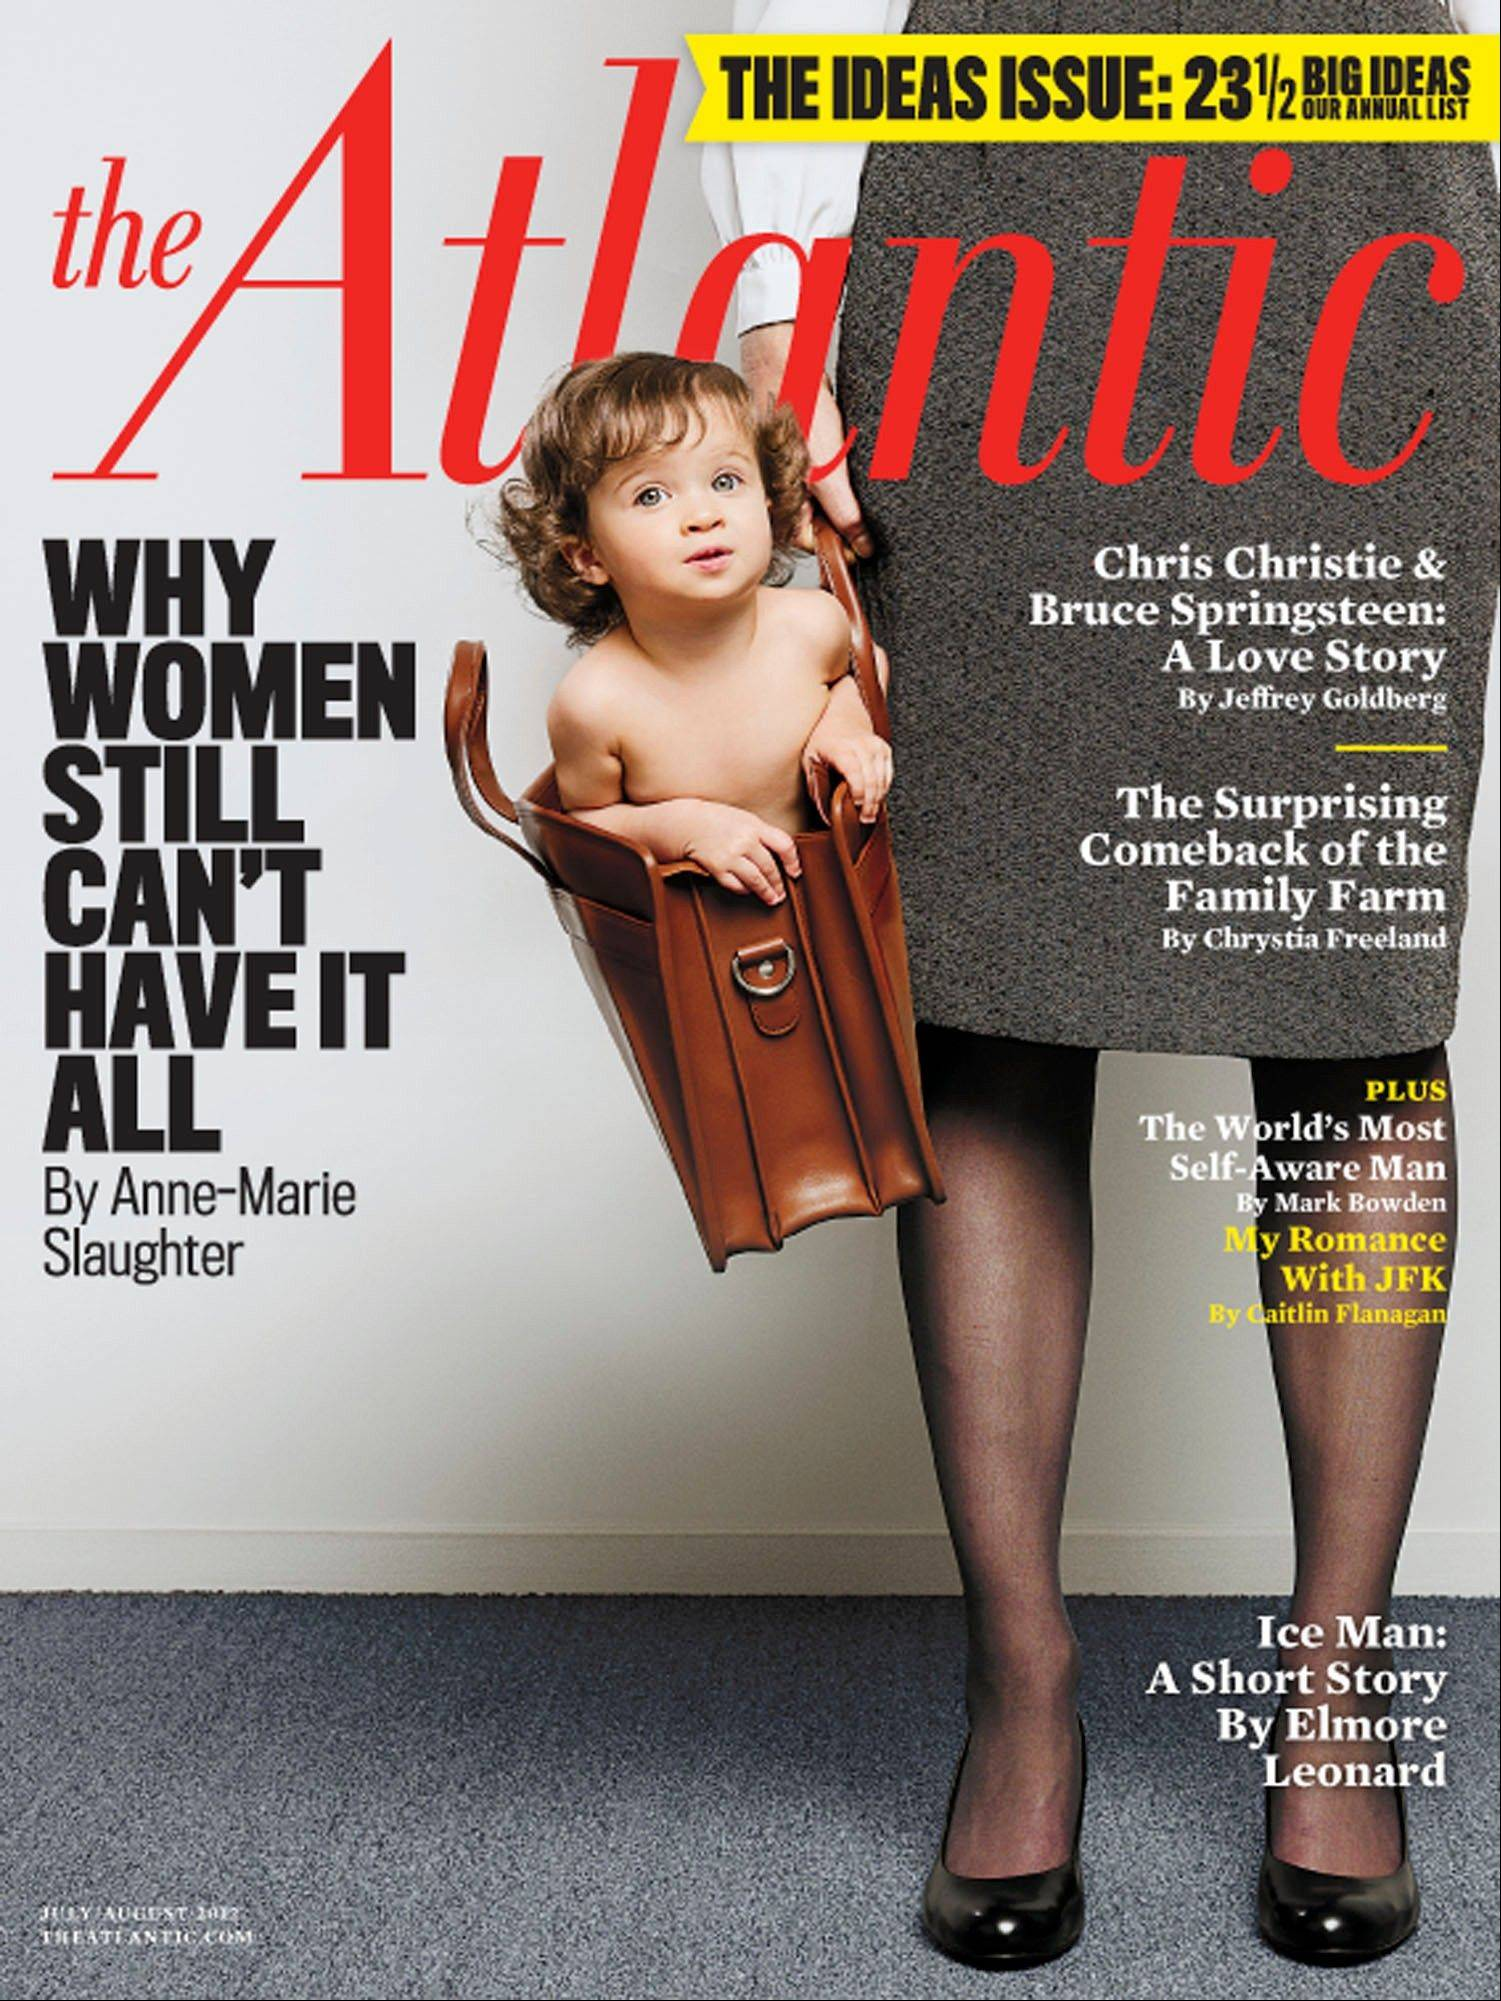 The Atlantic magazine cover from the July/August 2012 issue.